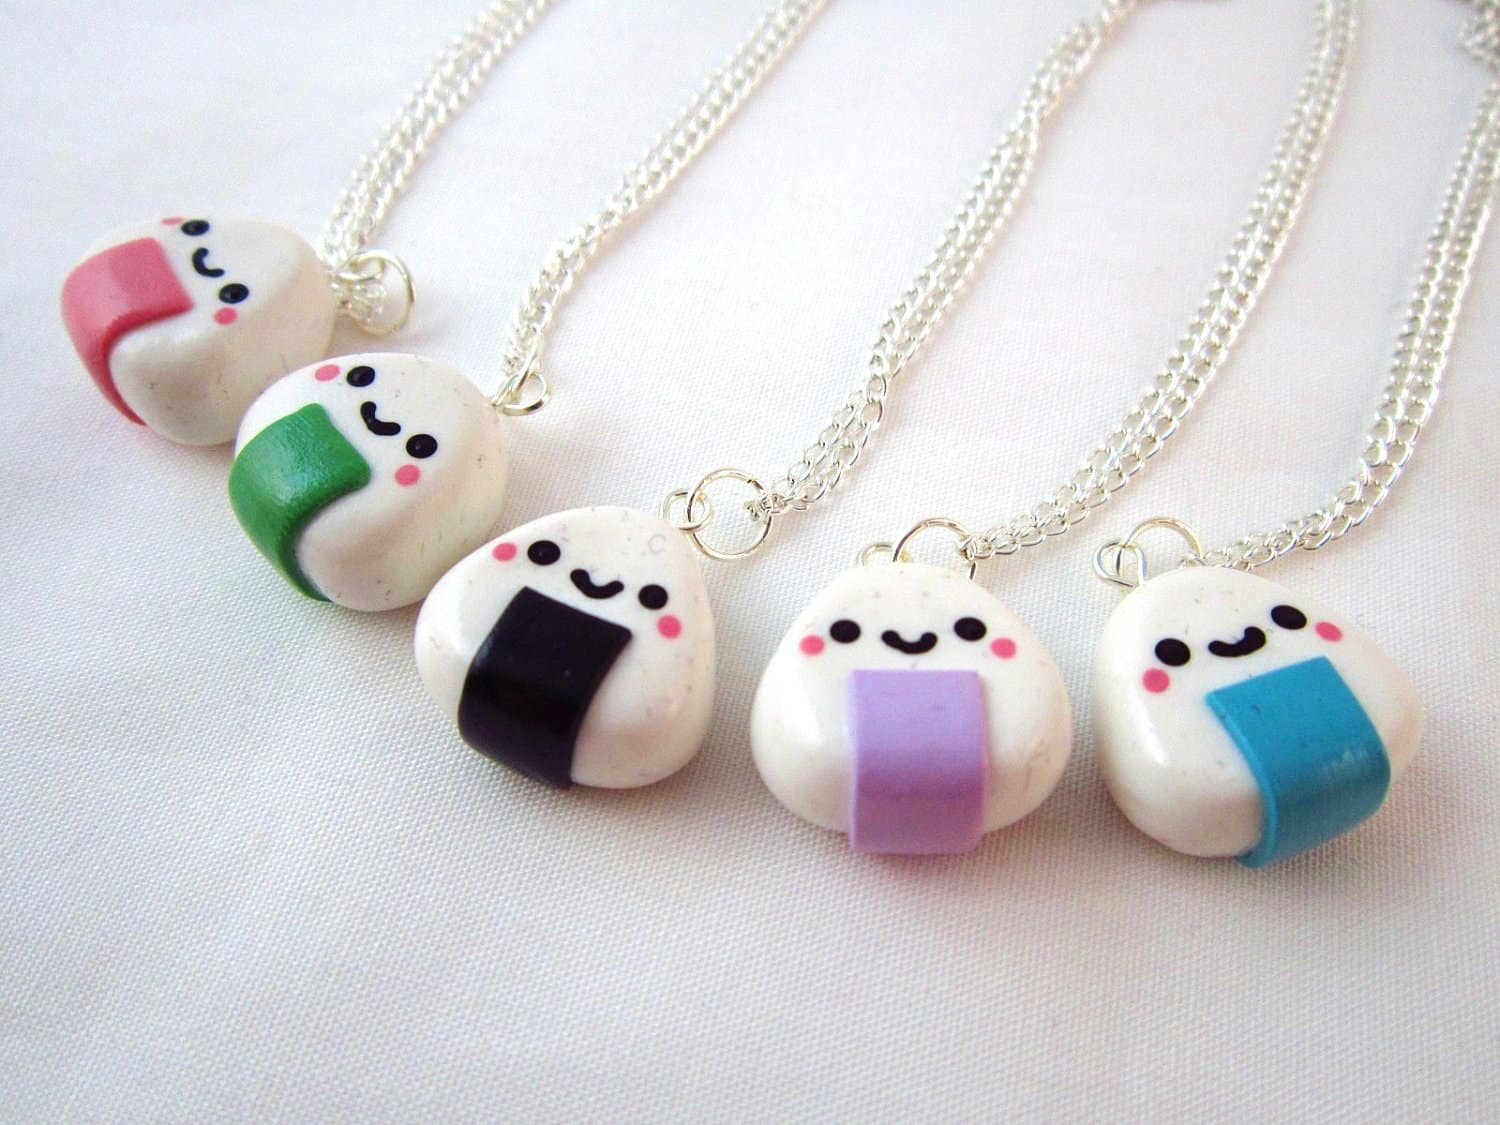 Diy kawaii sushi necklaces